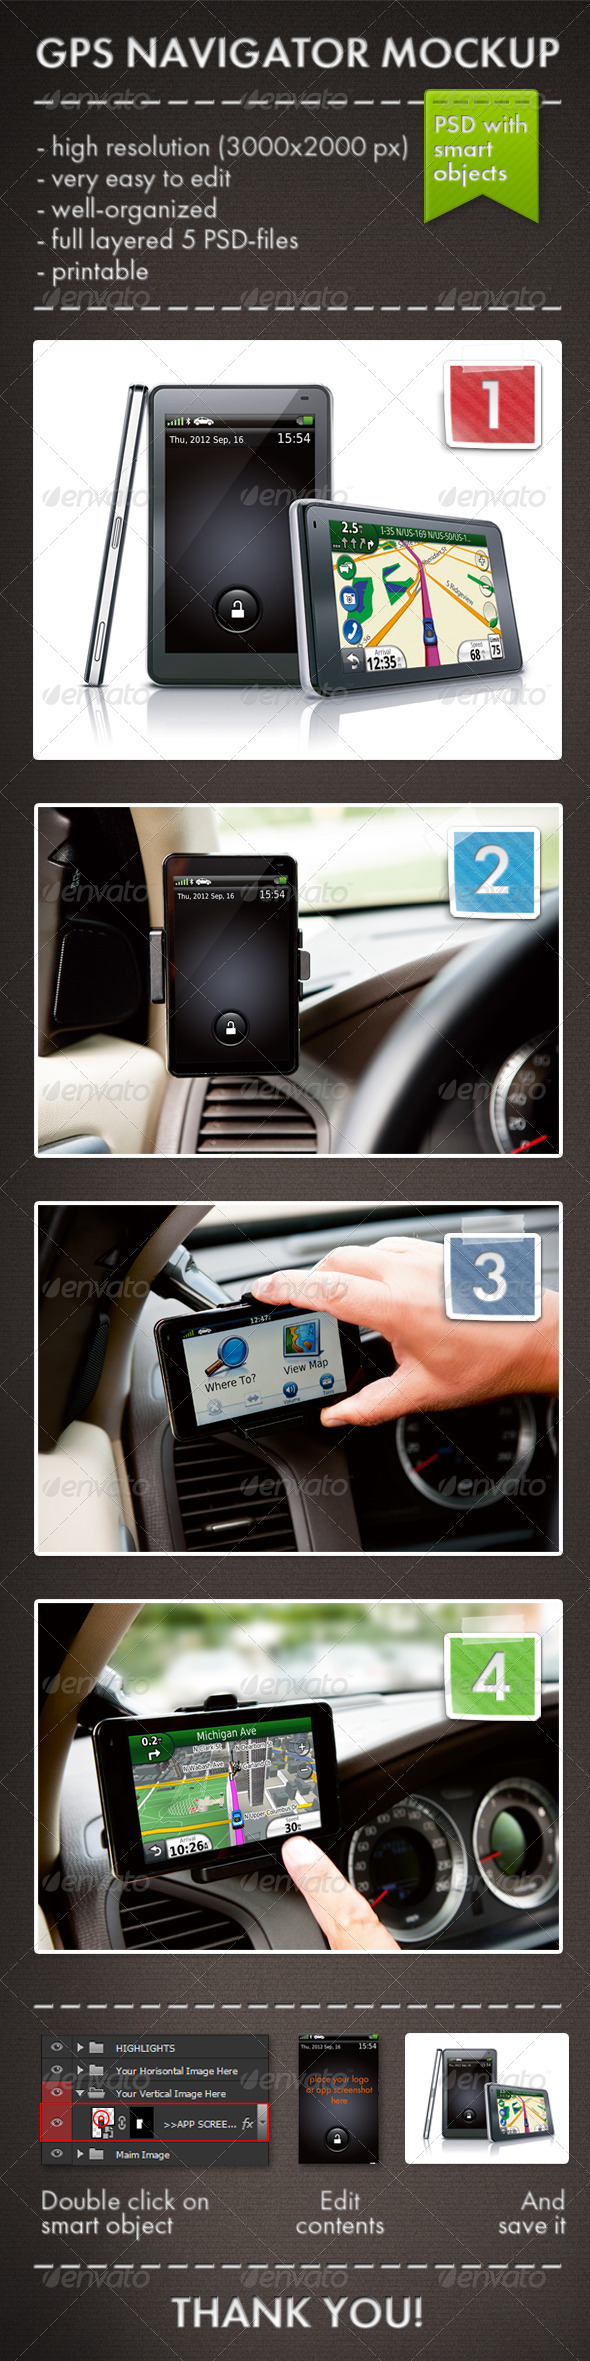 GPS Navigator Mockup - Mobile Displays